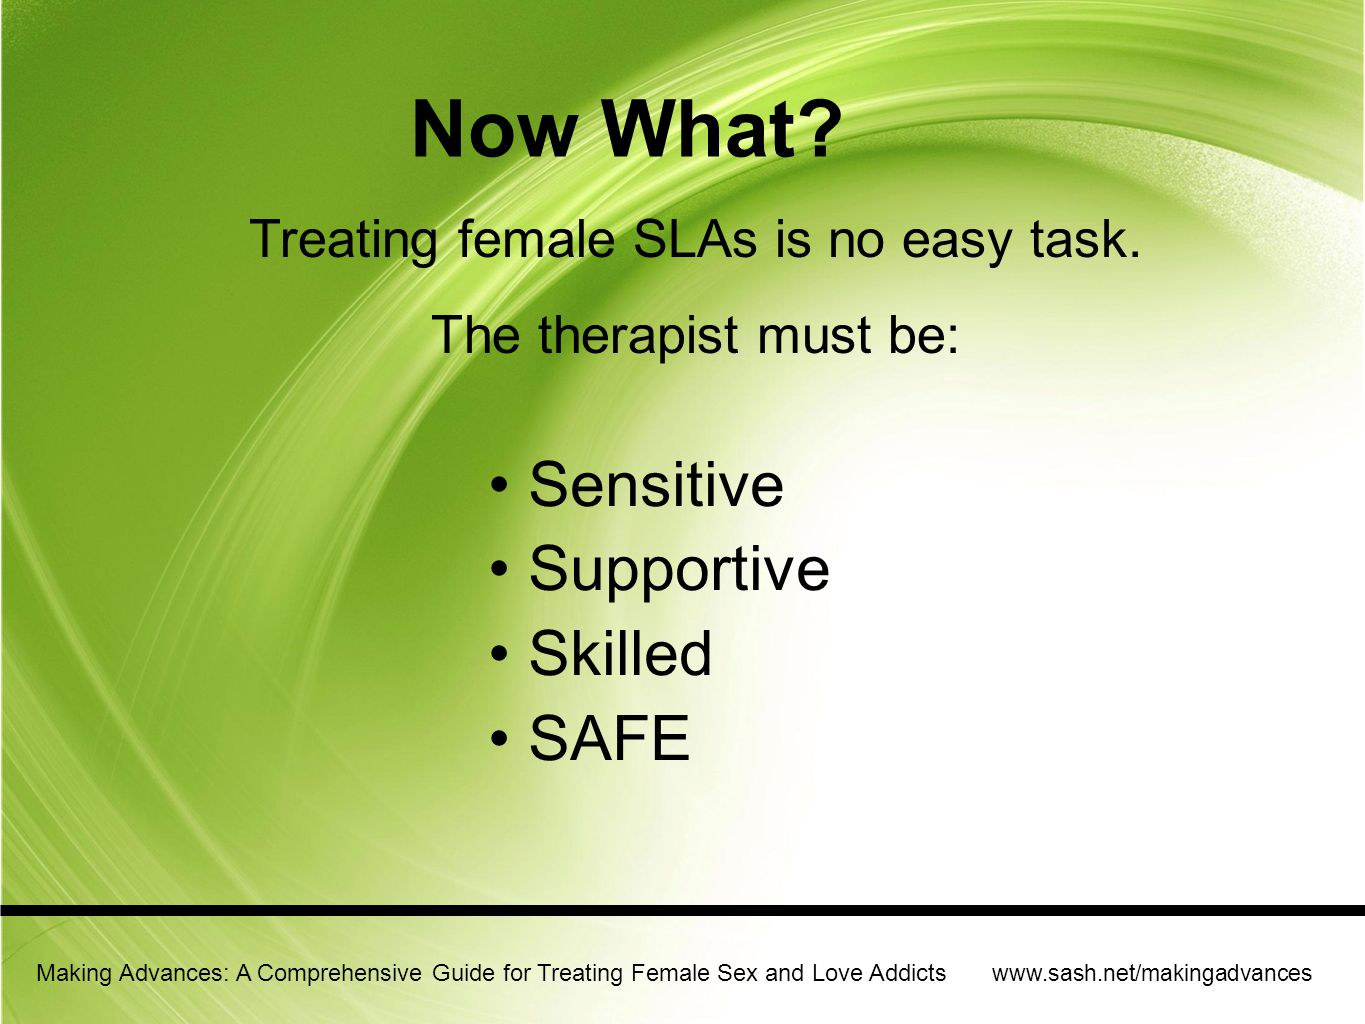 Treating female SLAs is no easy task.